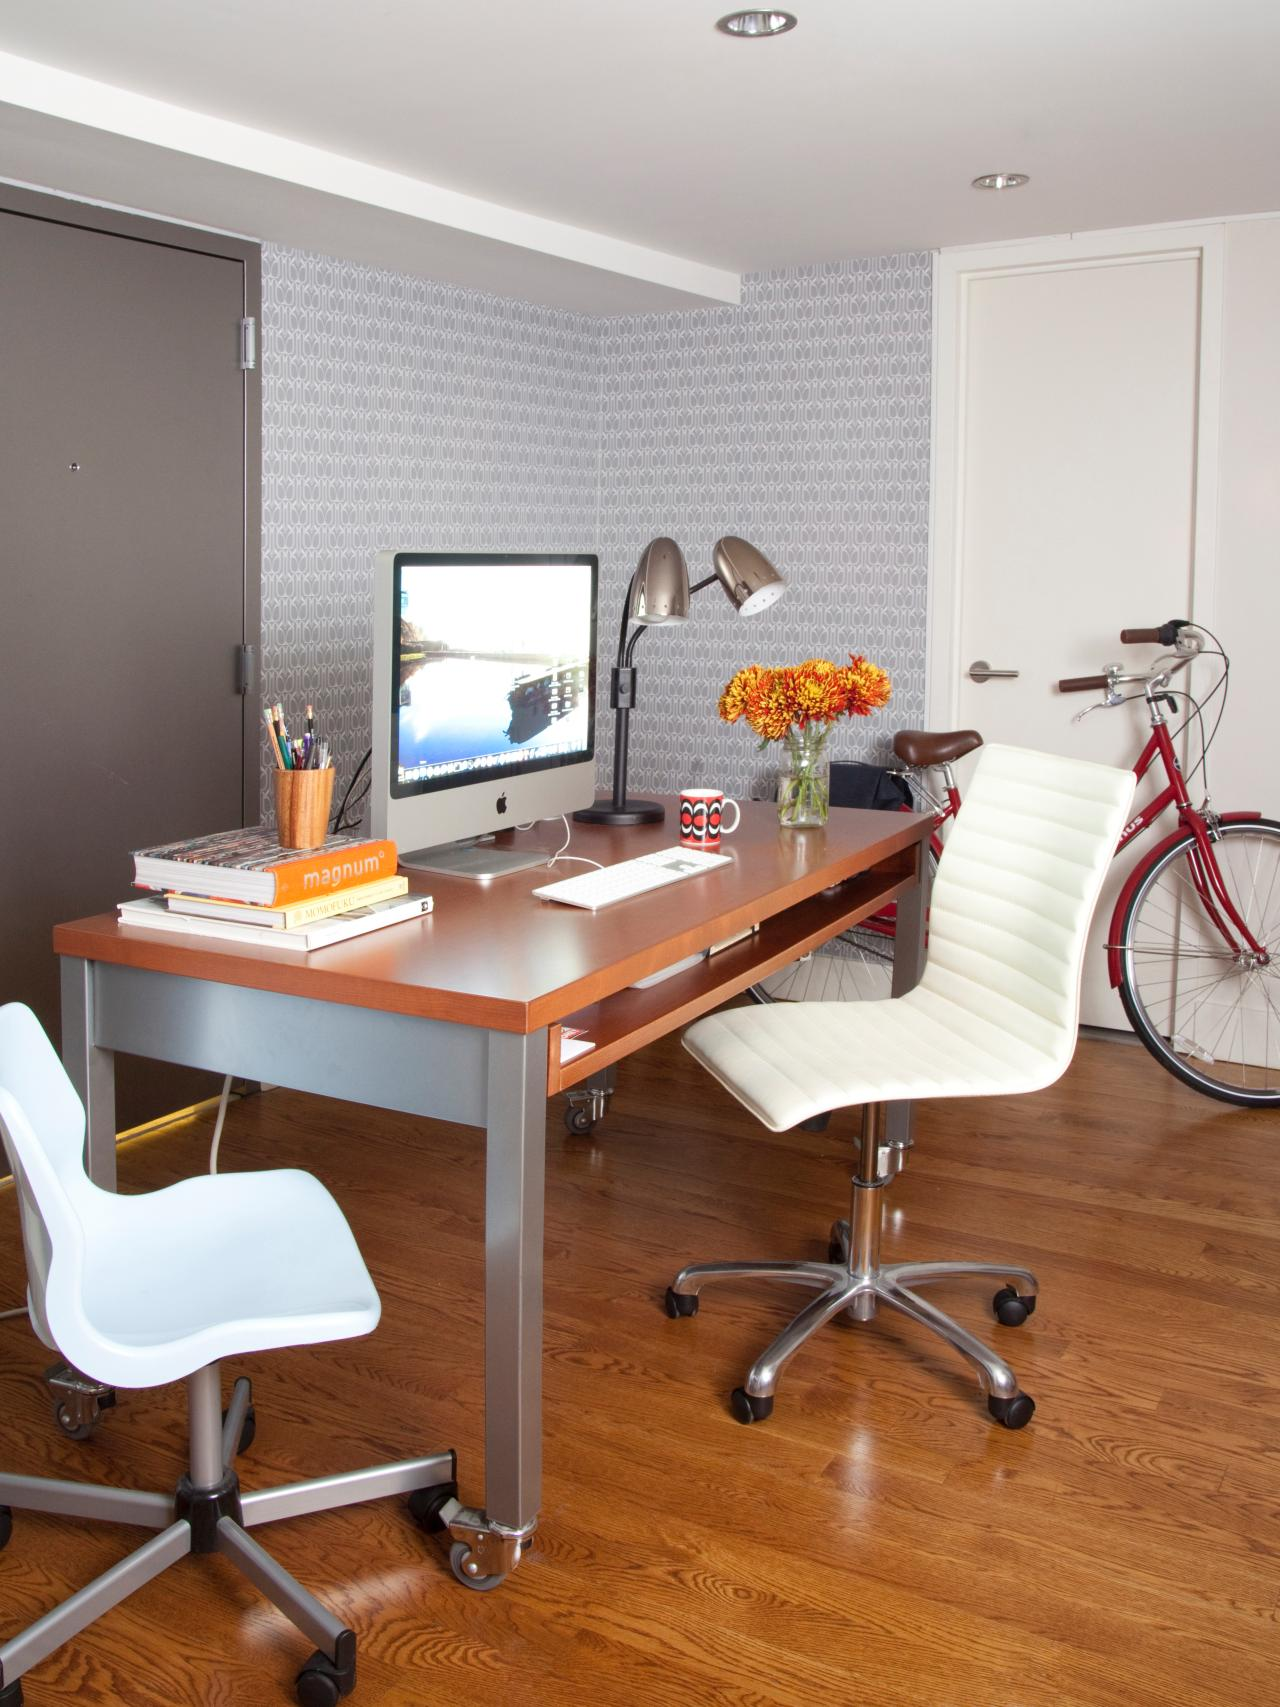 Small Space Ideas For The Bedroom And Home Office HGTV - Bedroom office design